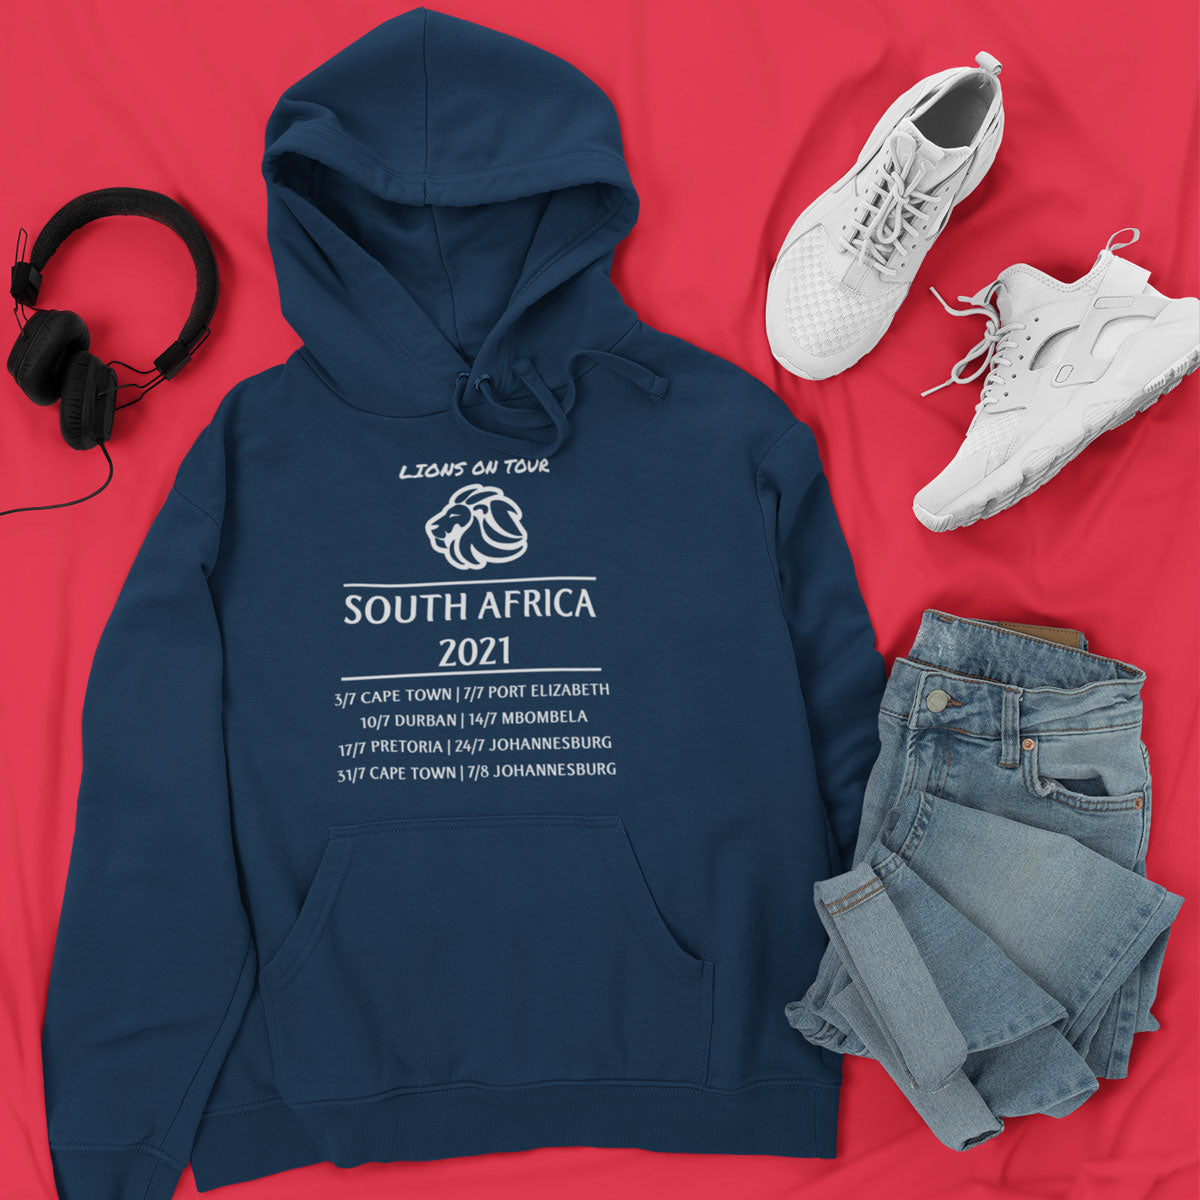 Unisex Lions On Tour South Africa 2021 Rugby Hoody - First XV rugbystuff.com